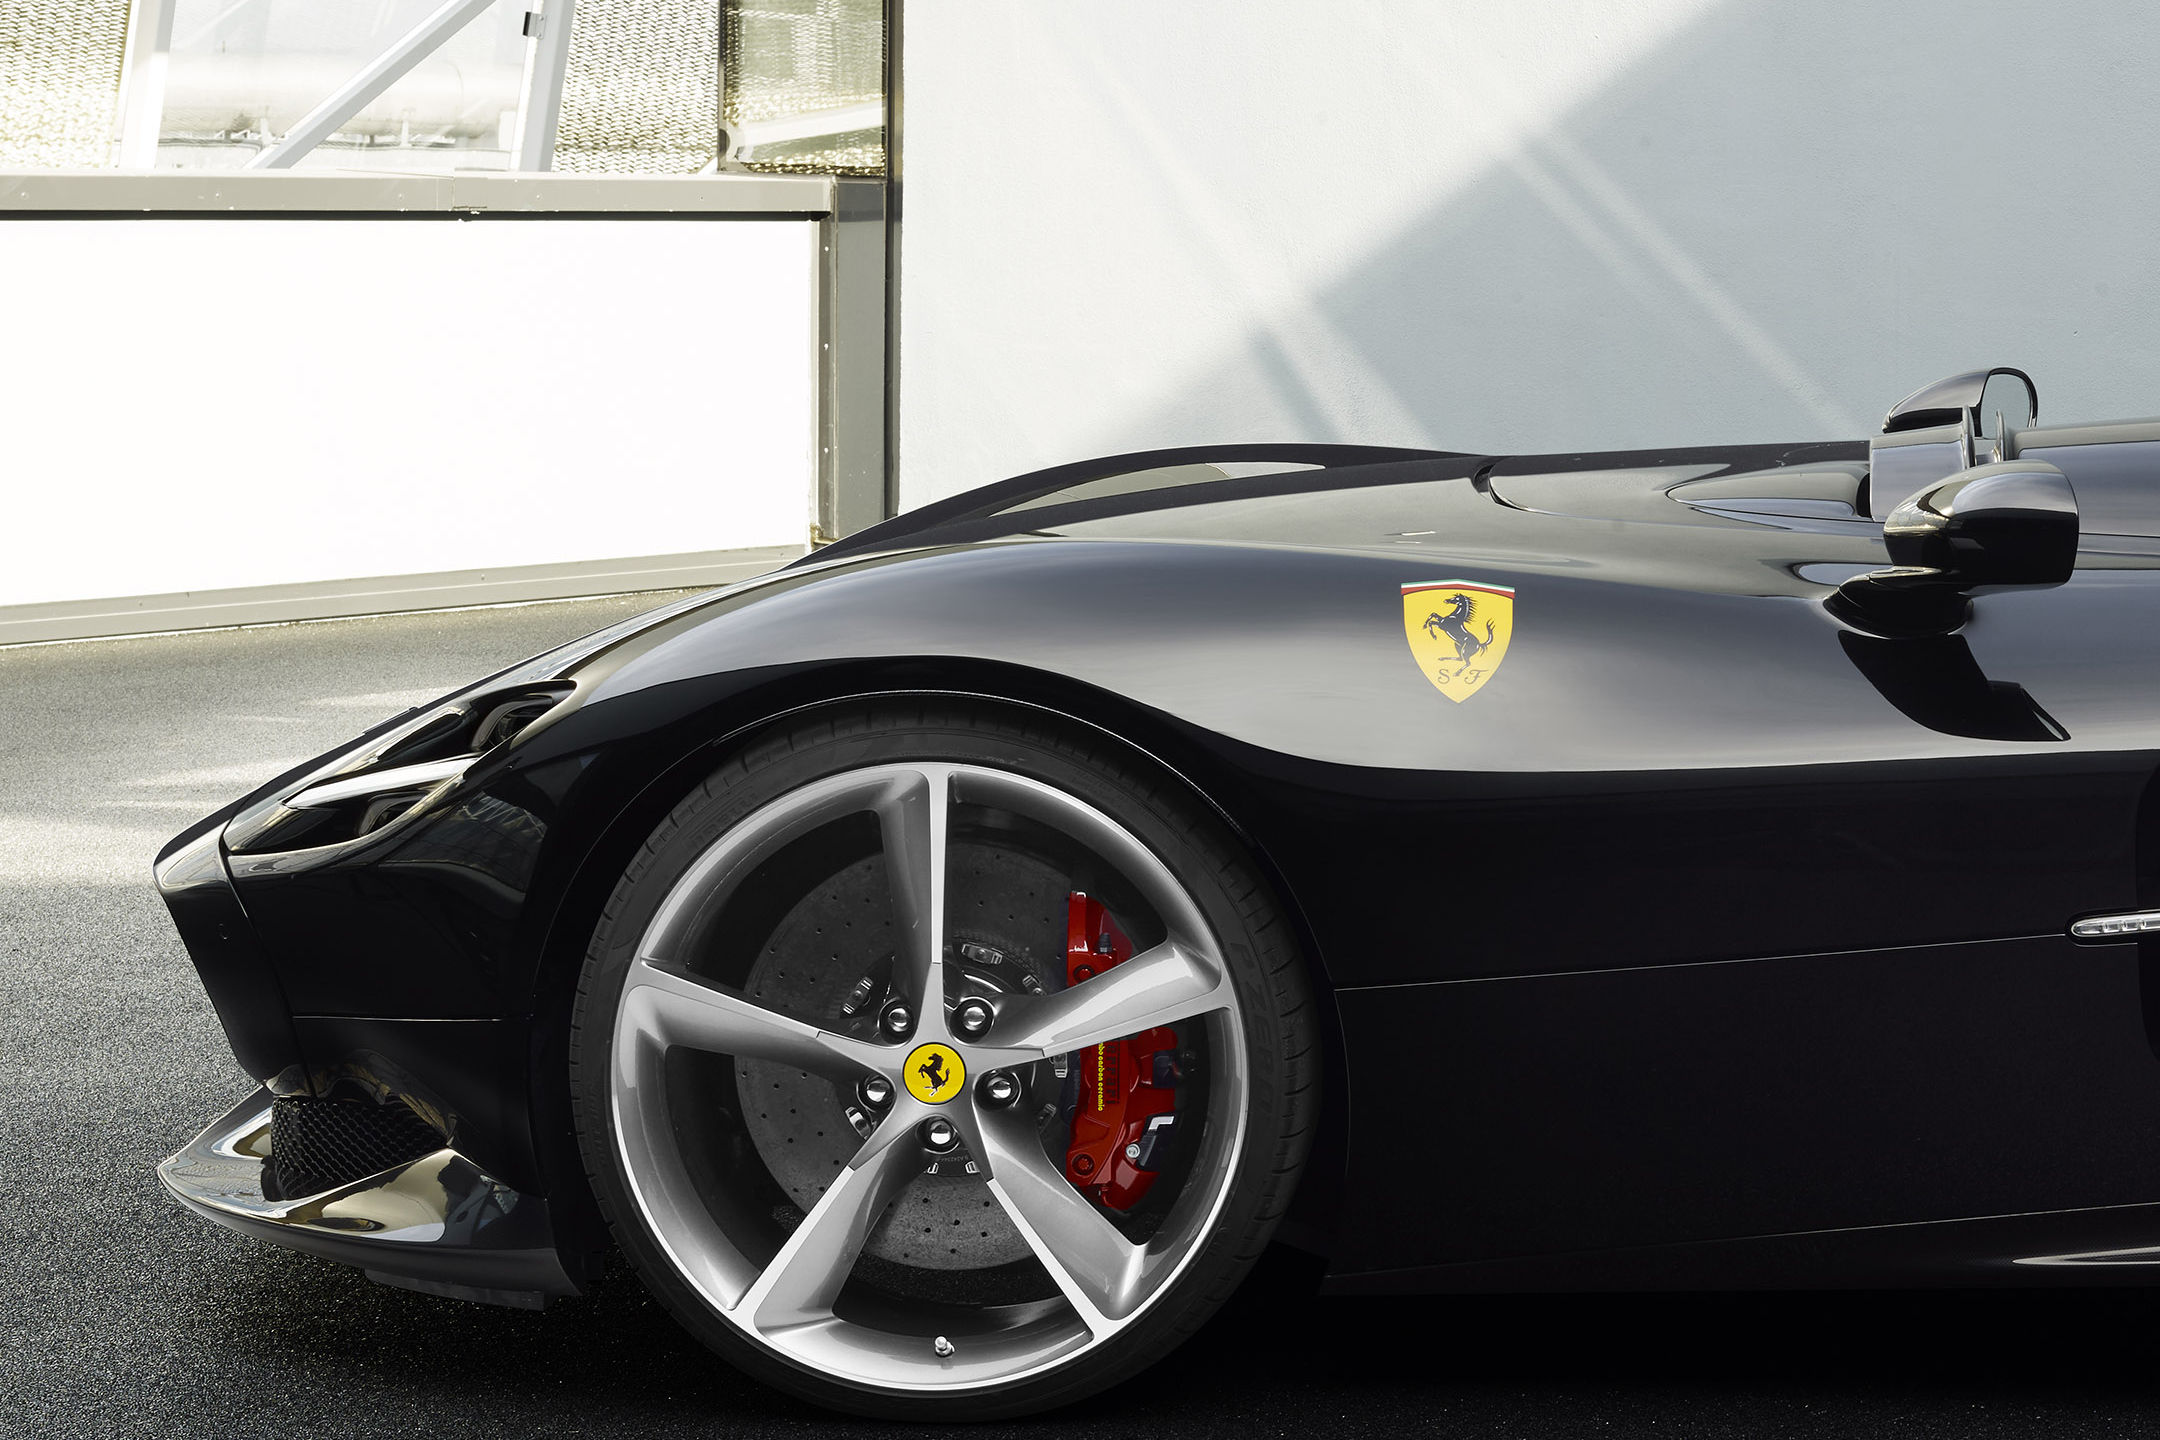 Ferrari Monza SP2 - racing barchetta - 2018 - front wheel / jante avant